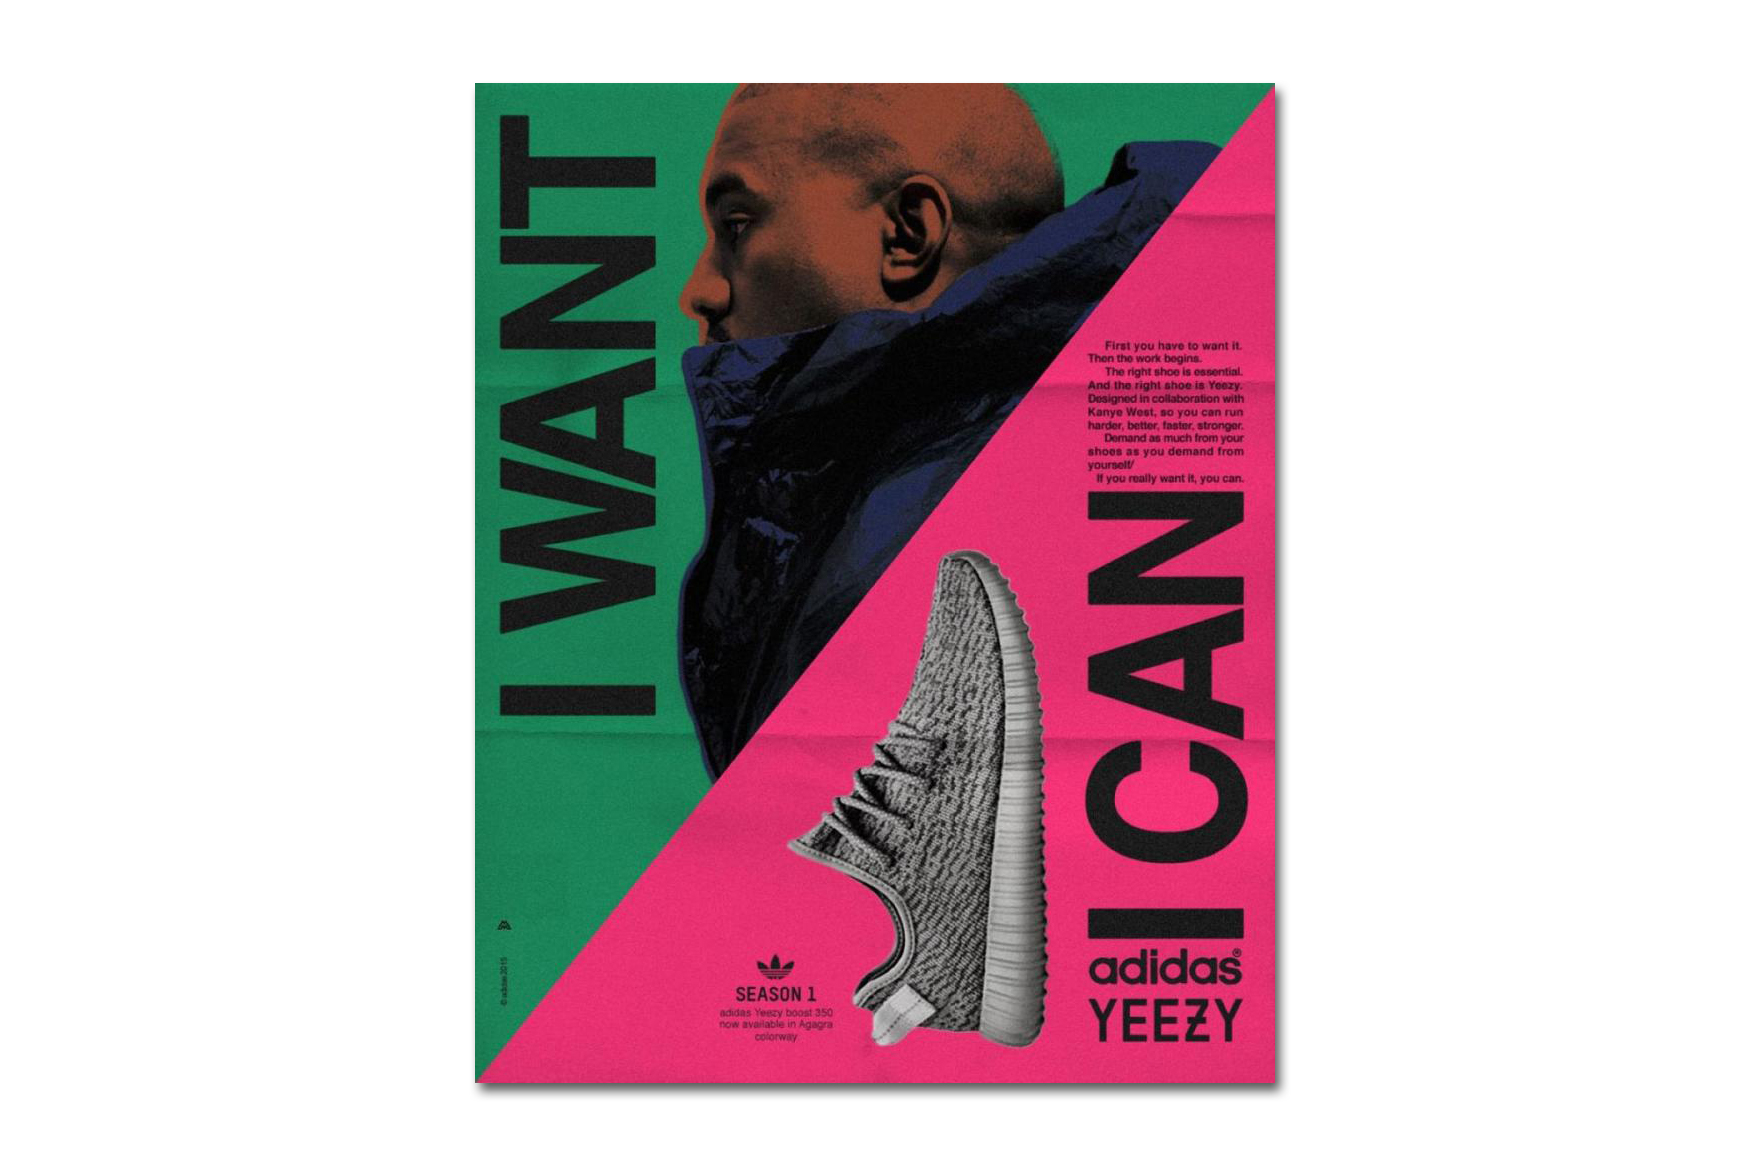 Artist Reimagines Vintage adidas Ads to Feature Kanye West